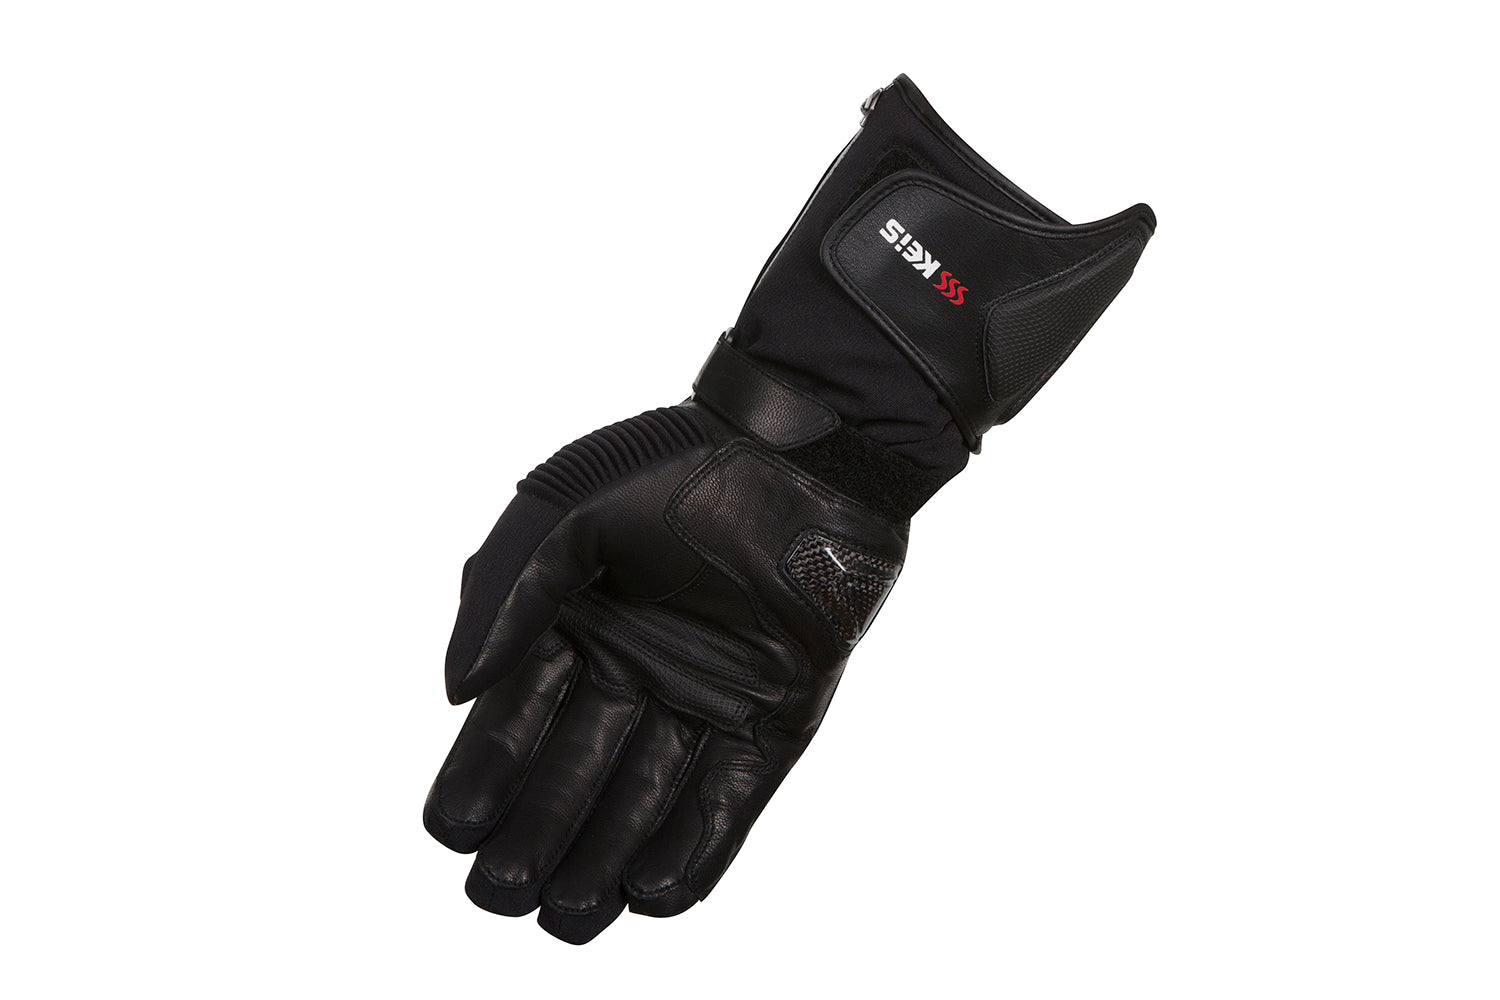 heated gloves G502 used quality materials